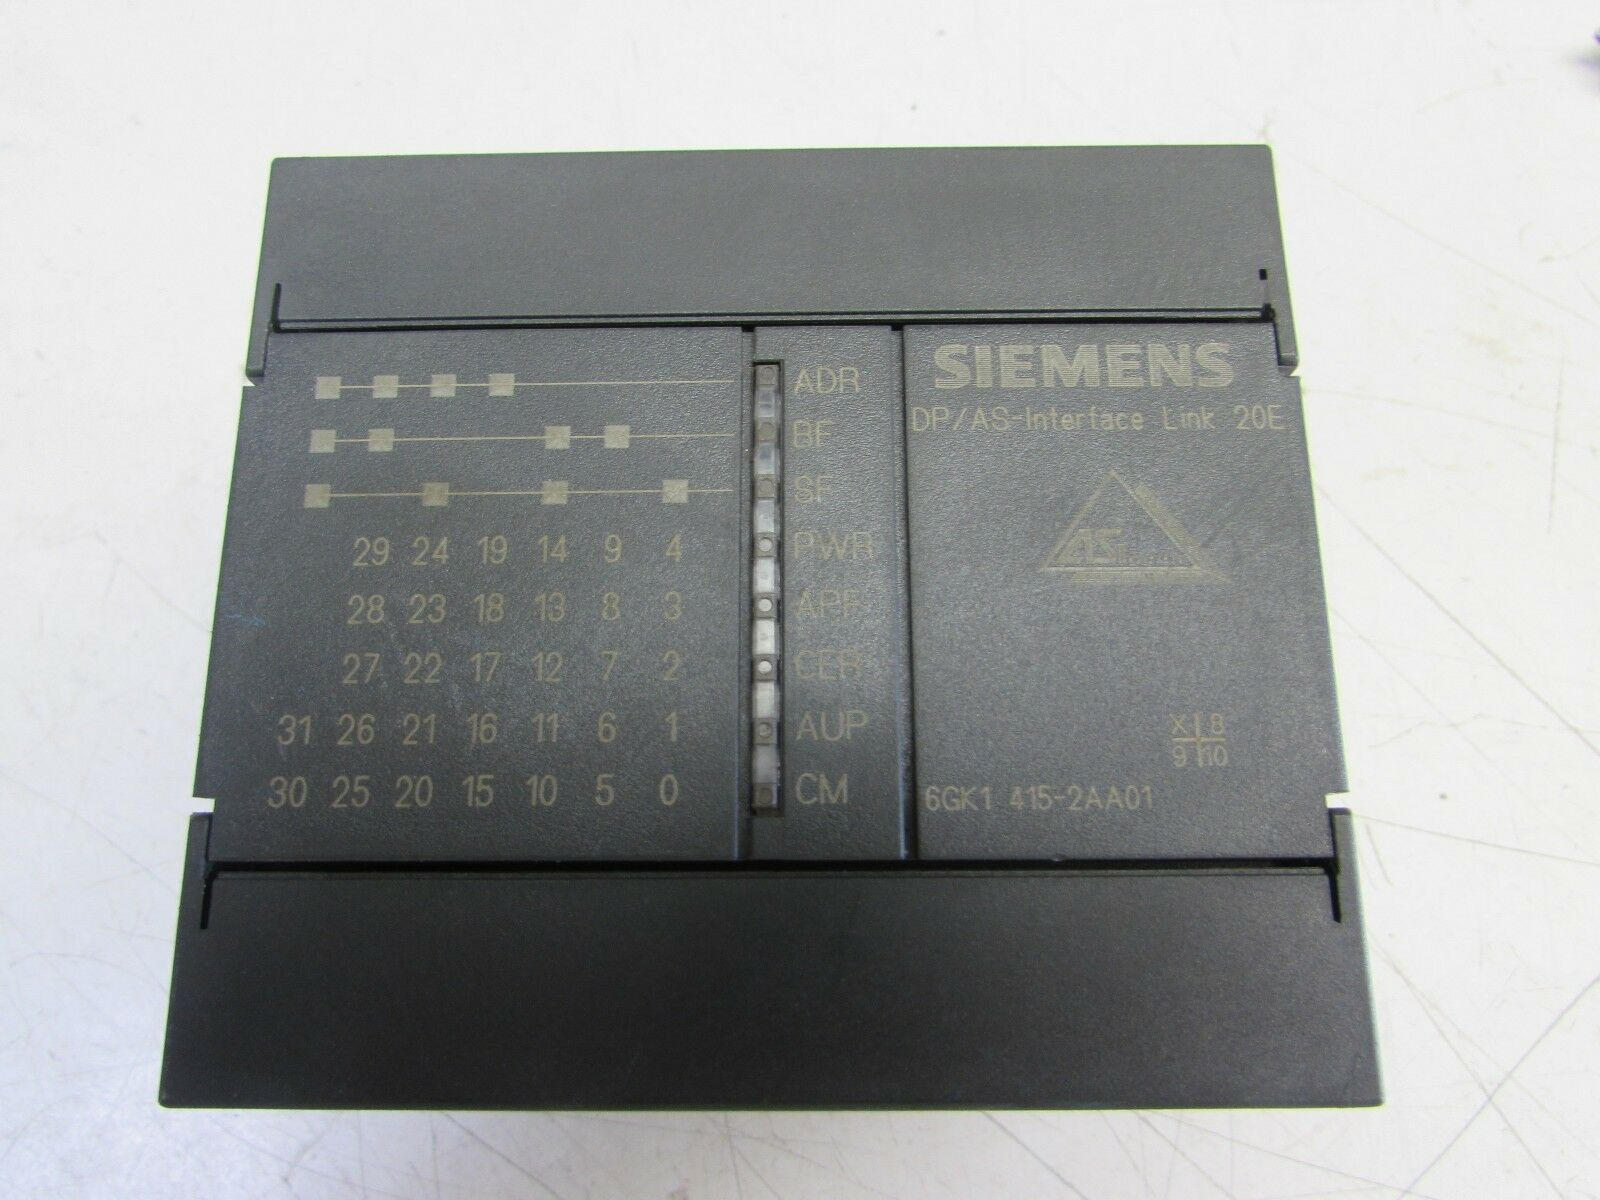 SIEMENS NET LINK PROFIBUS INTERFACE 6GK1415-2AA01 XLNT USED TAKEOUT   MAKE OFFER